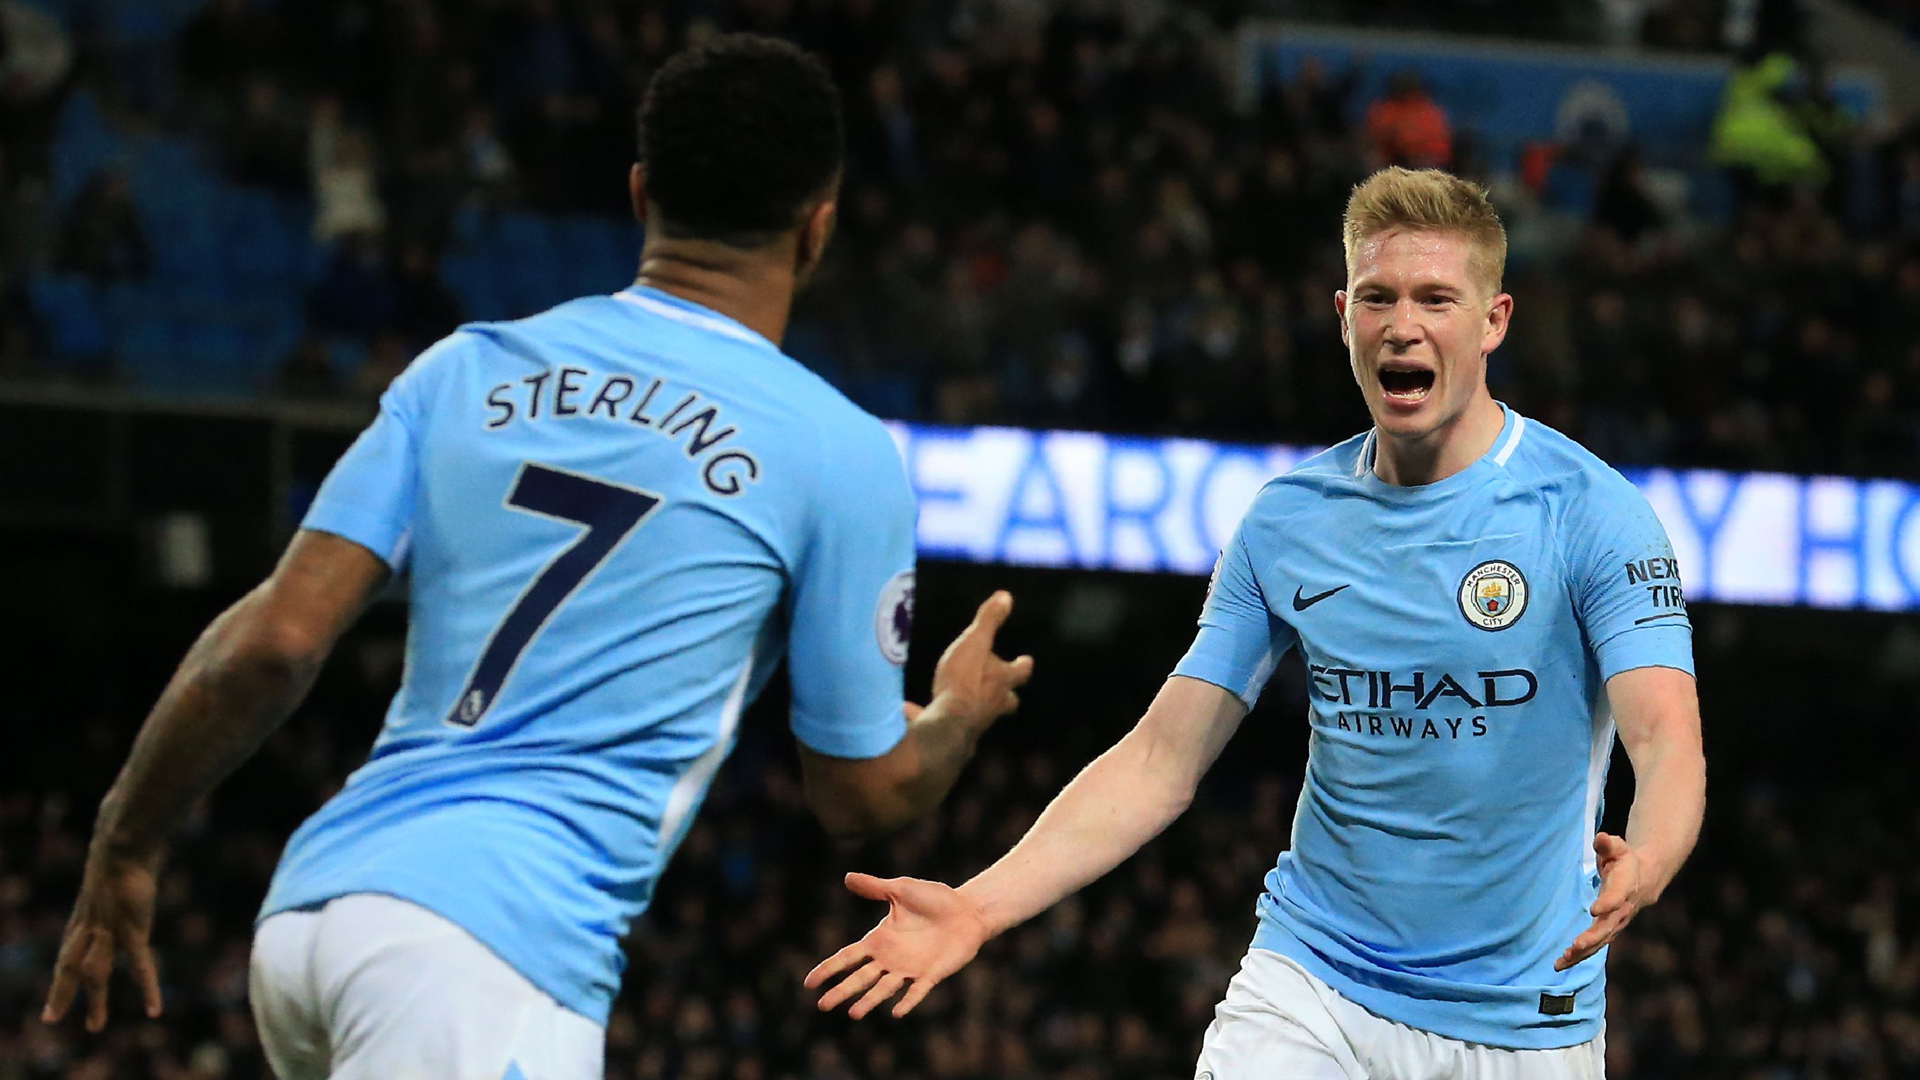 De Bruyne Sterling Manchester City West Brom Premier League 01312018